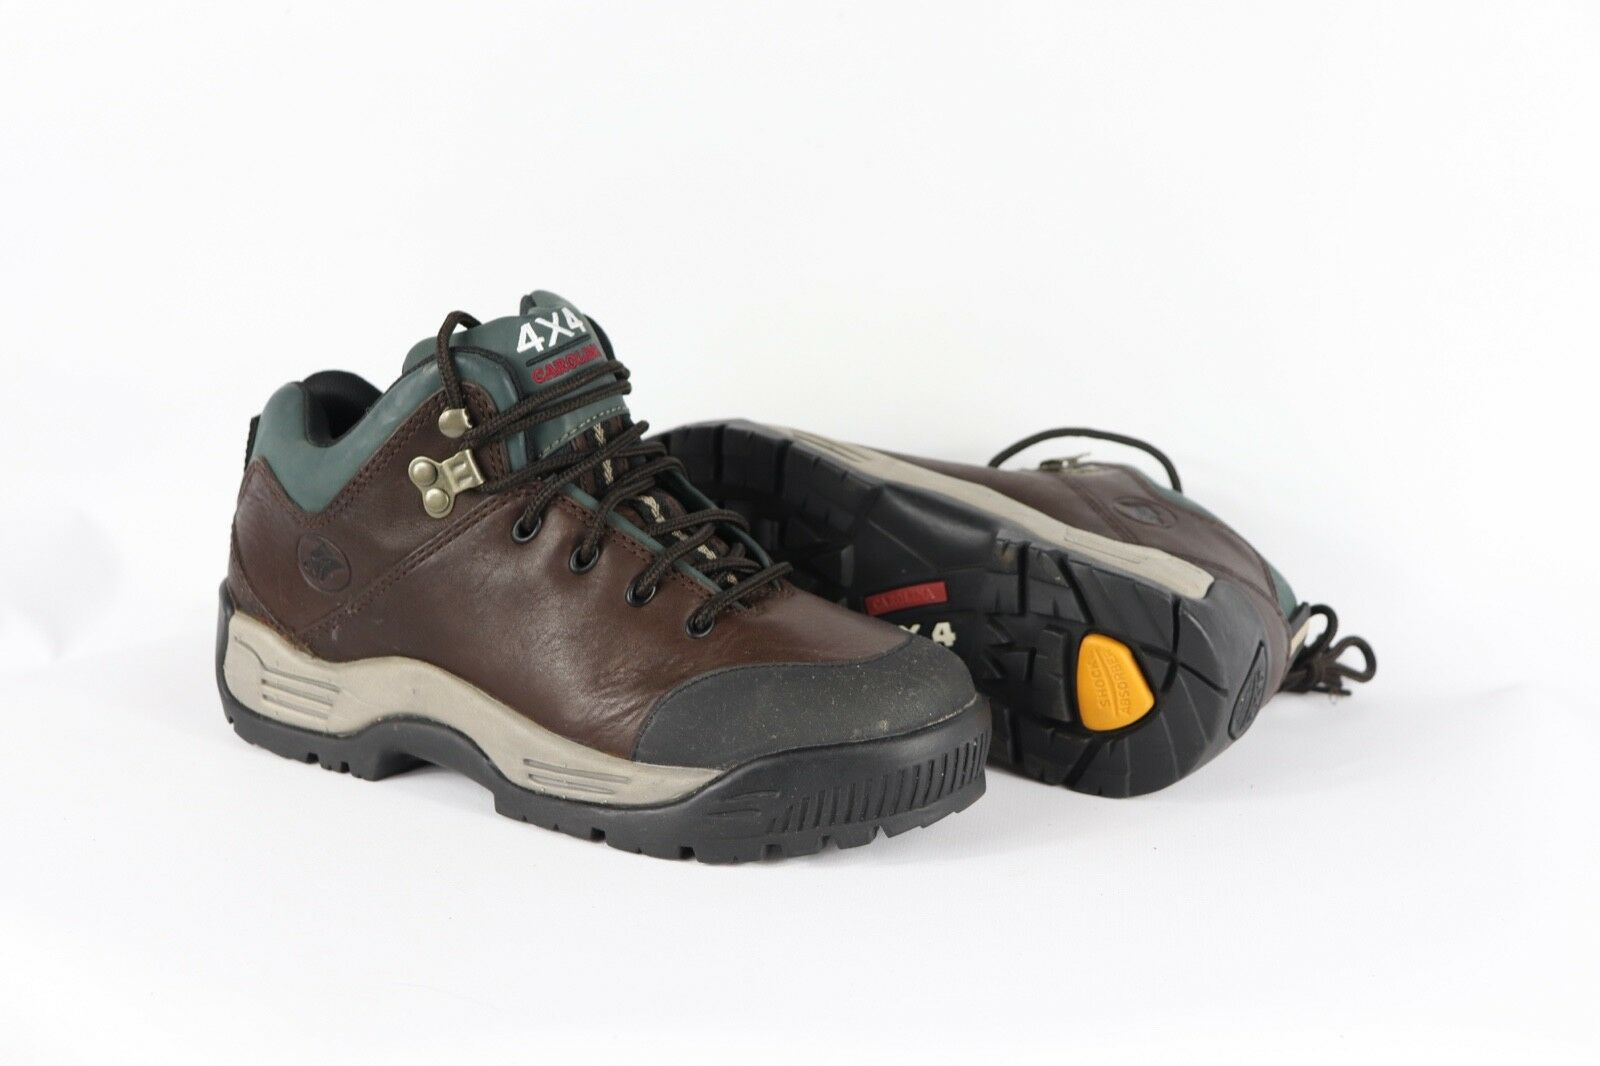 New Carolina Mens 7 D 4x4 Leather Steel Toe Outdoor Hiking Trail Boots Brown